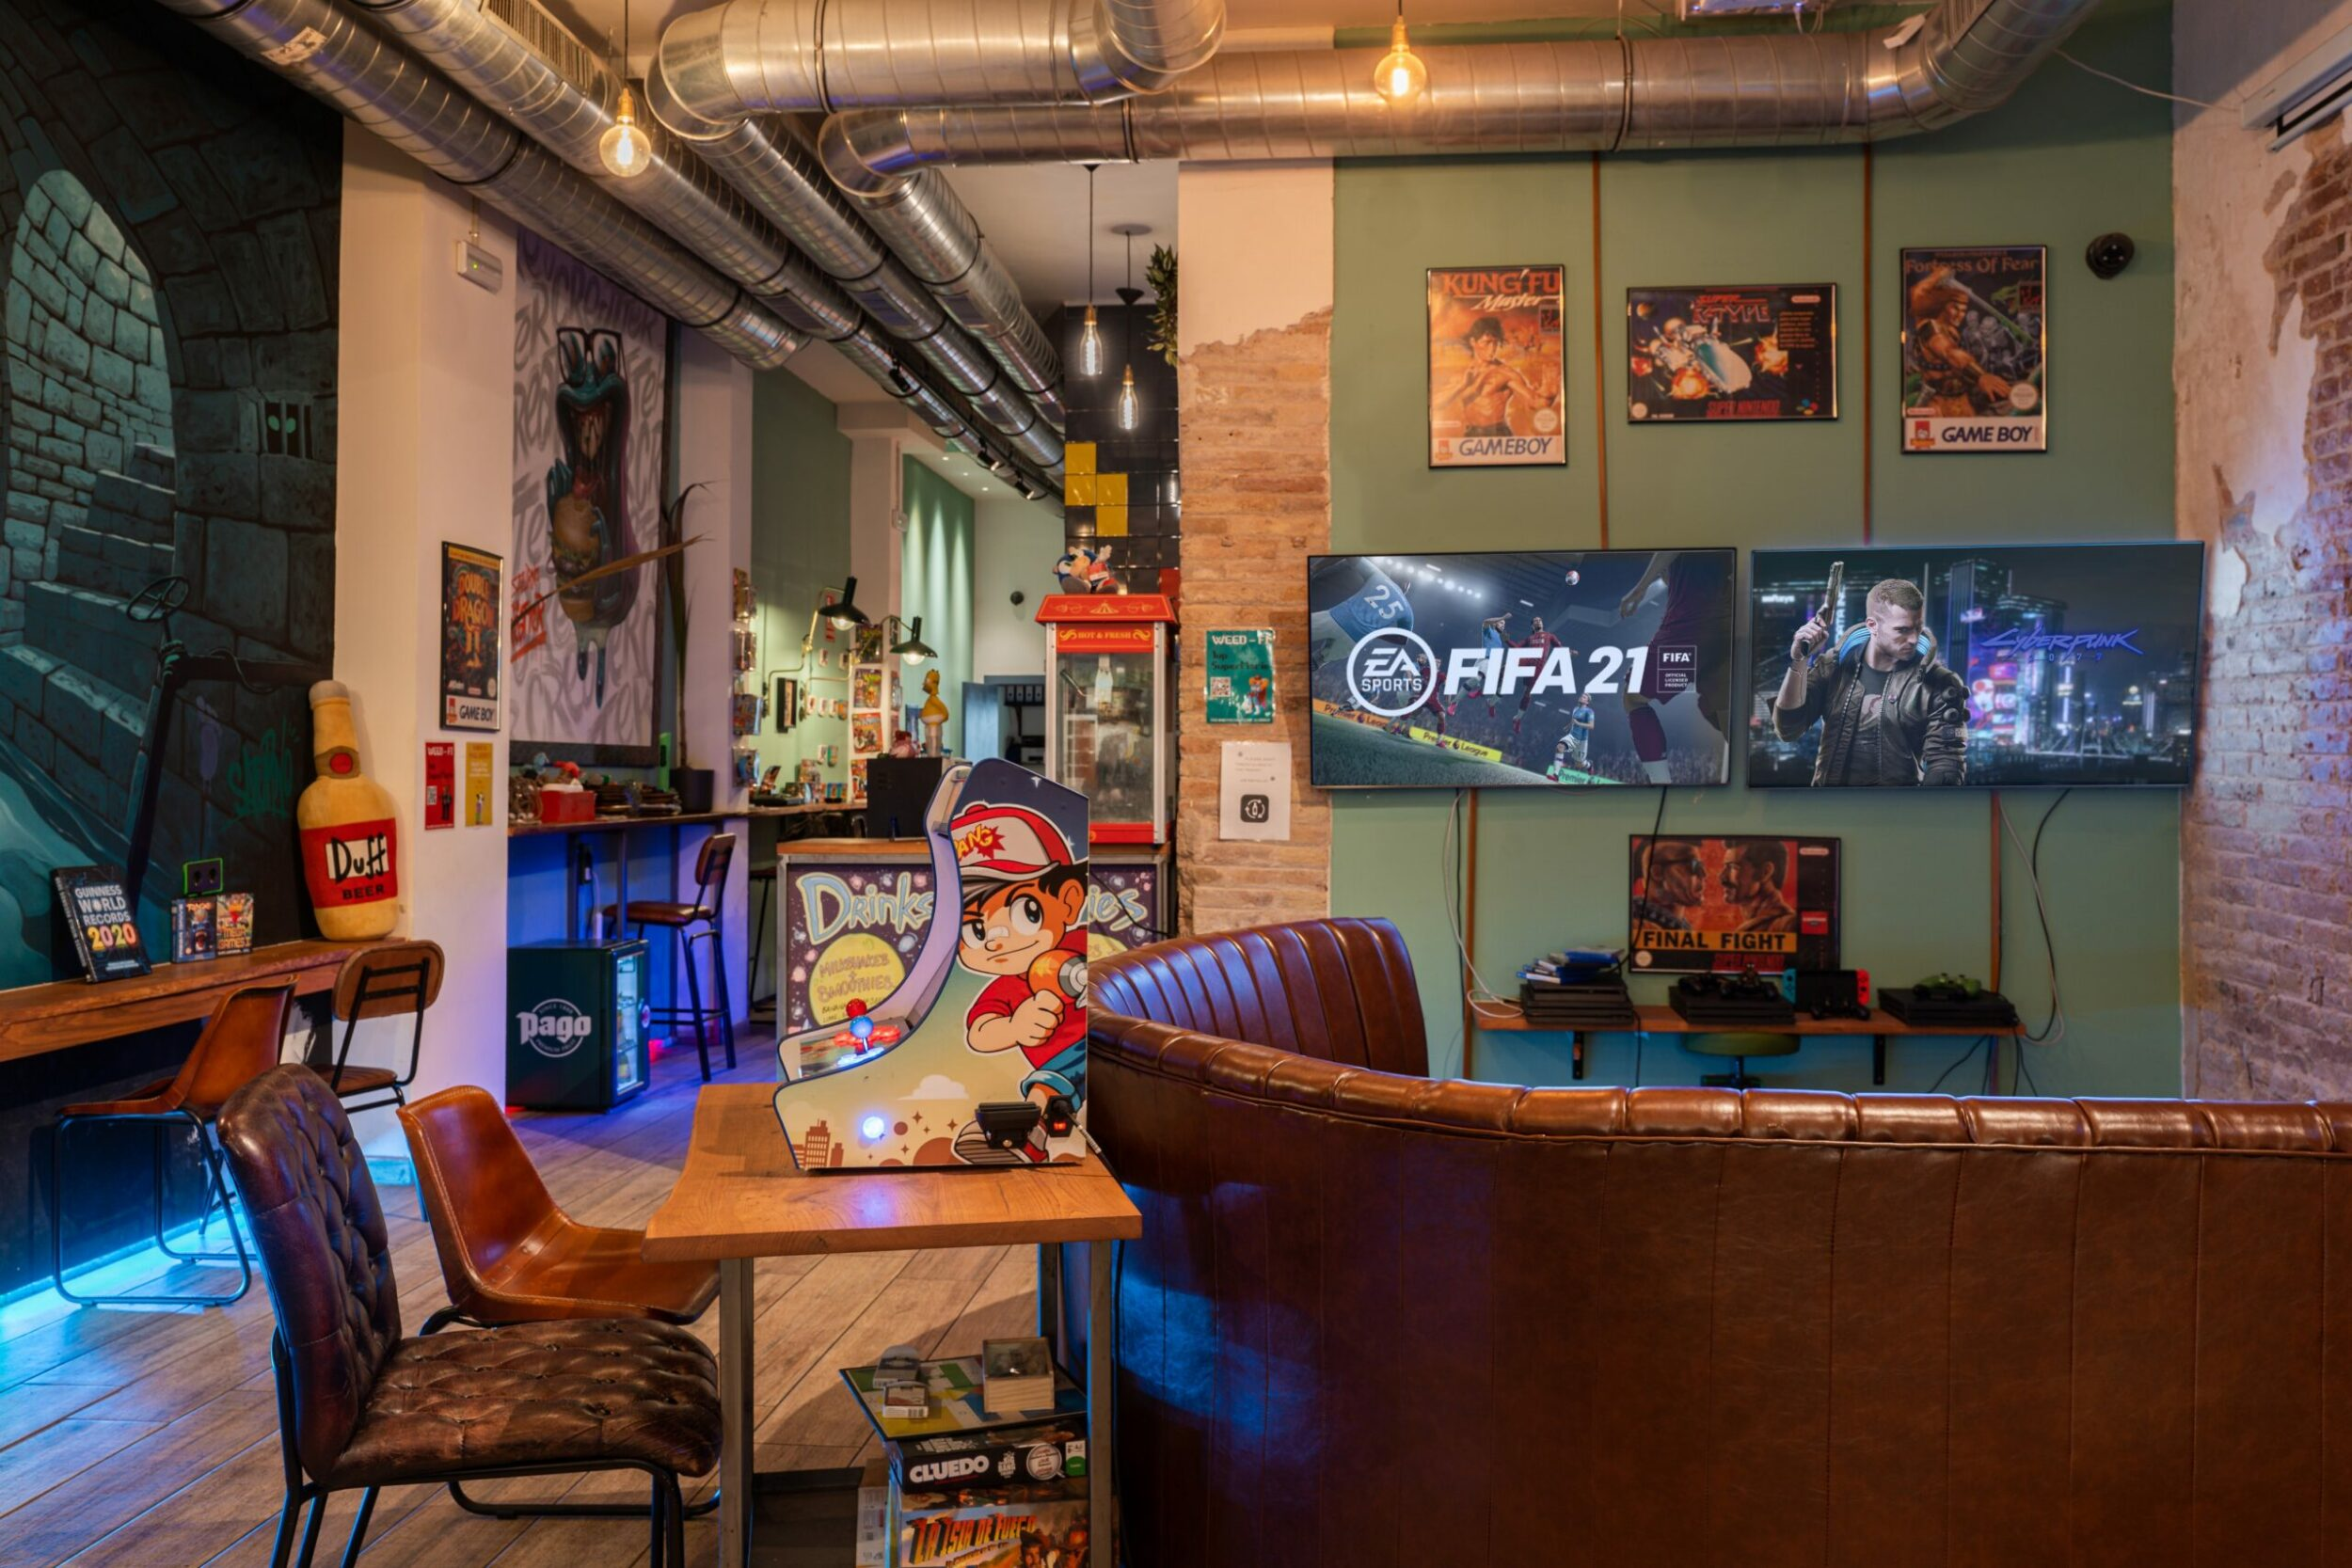 For large screens for playing playstation games in Weed Club Eixample